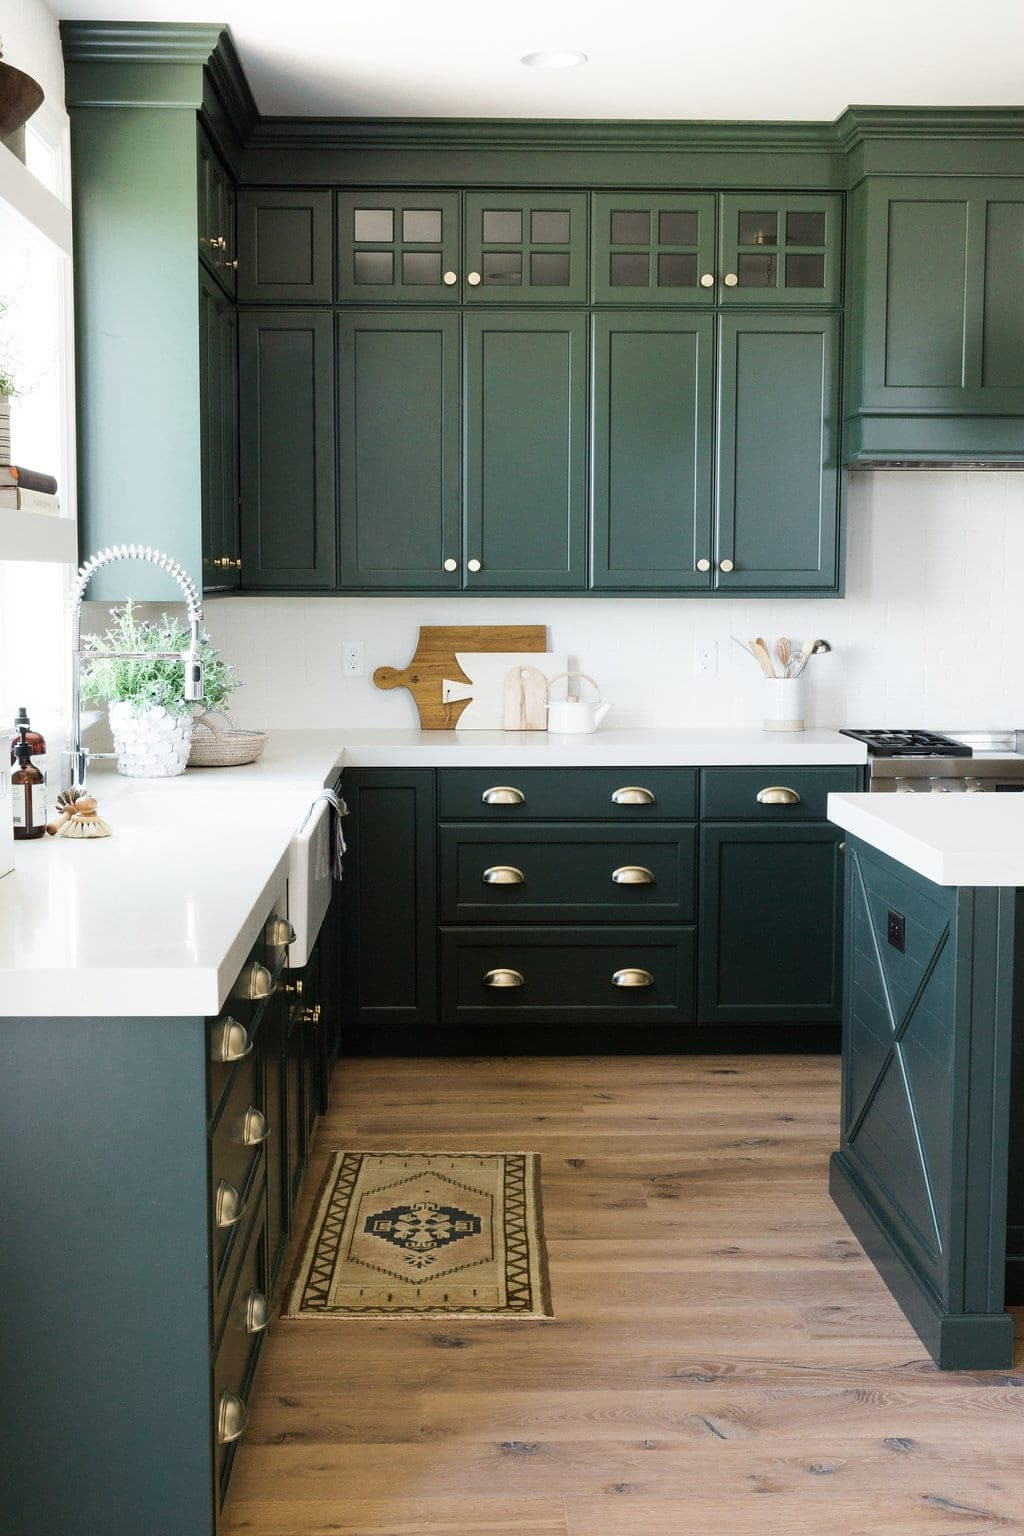 Best Kitchen Cabinet Paint Colors Green Kitchen Cabinet Inspiration - Bless'er House